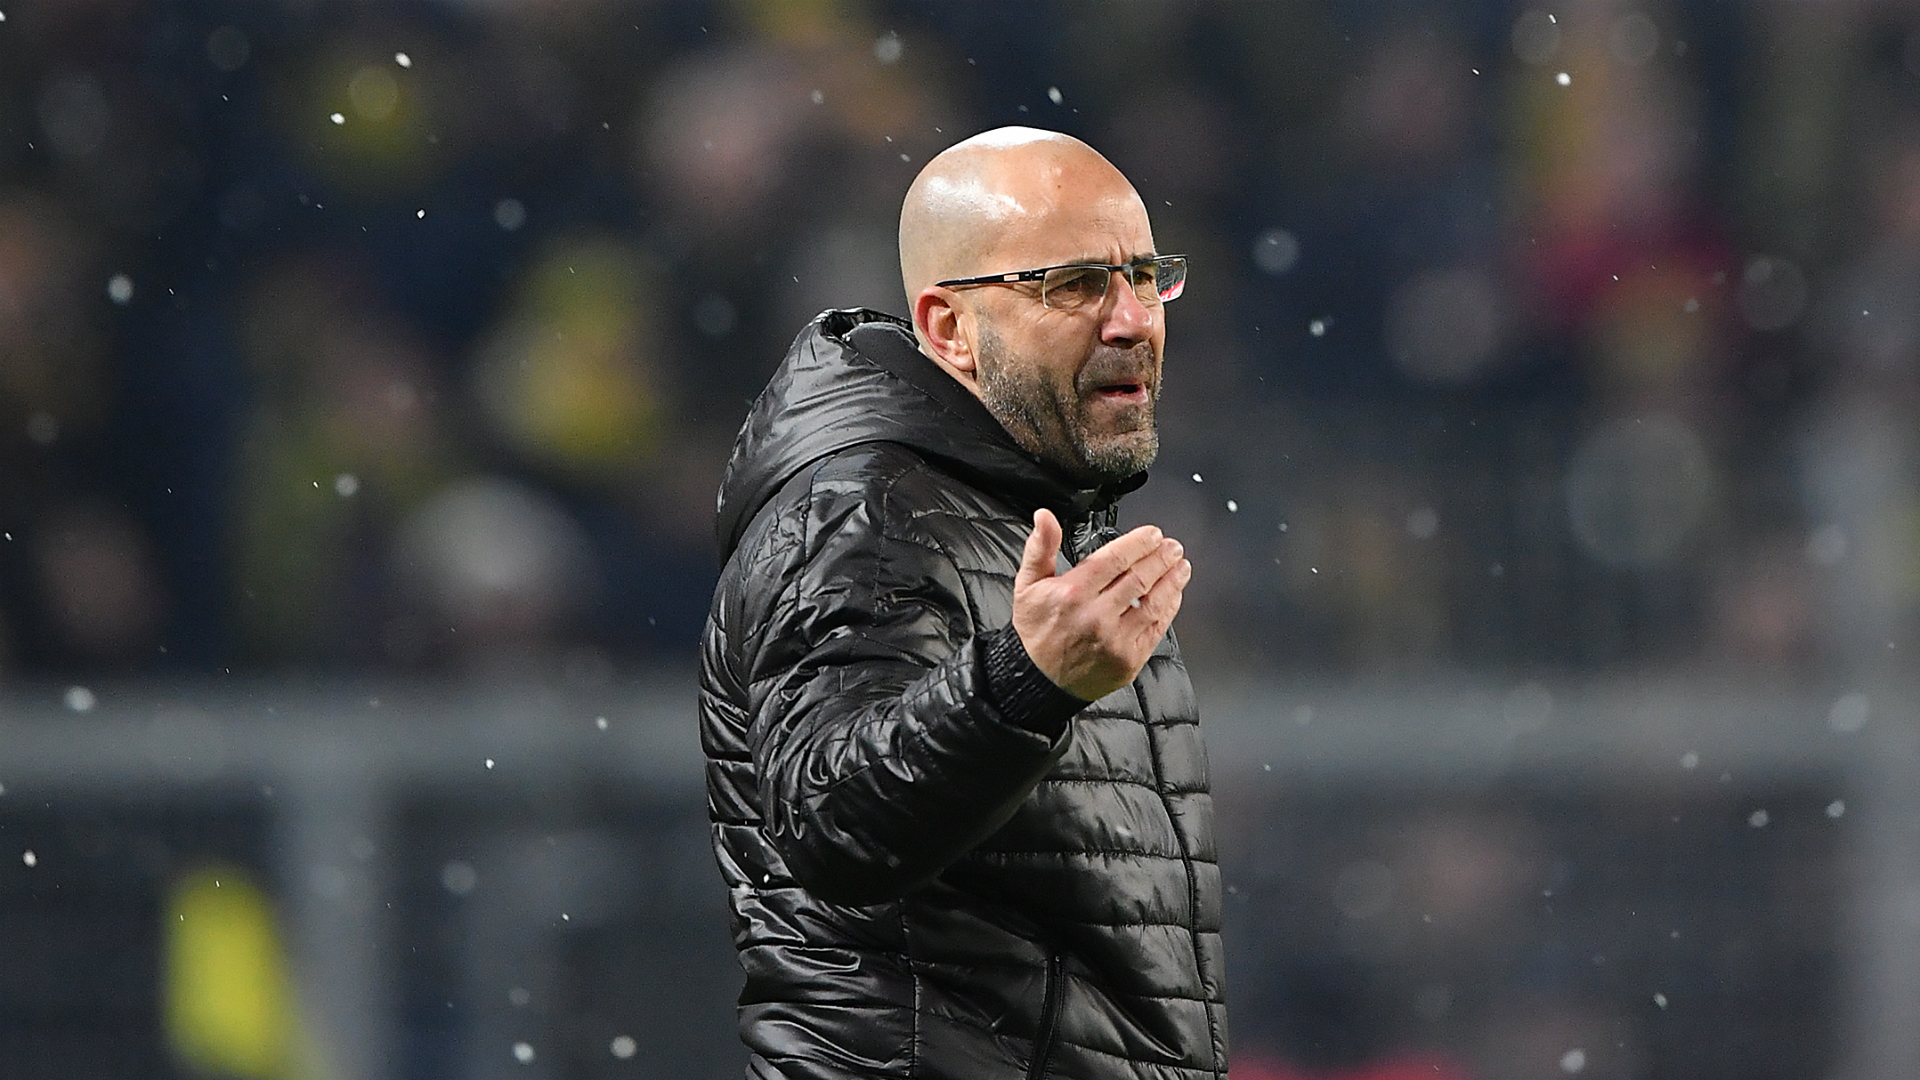 Borussia Dortmund sack coach Peter Bosz after terrible run